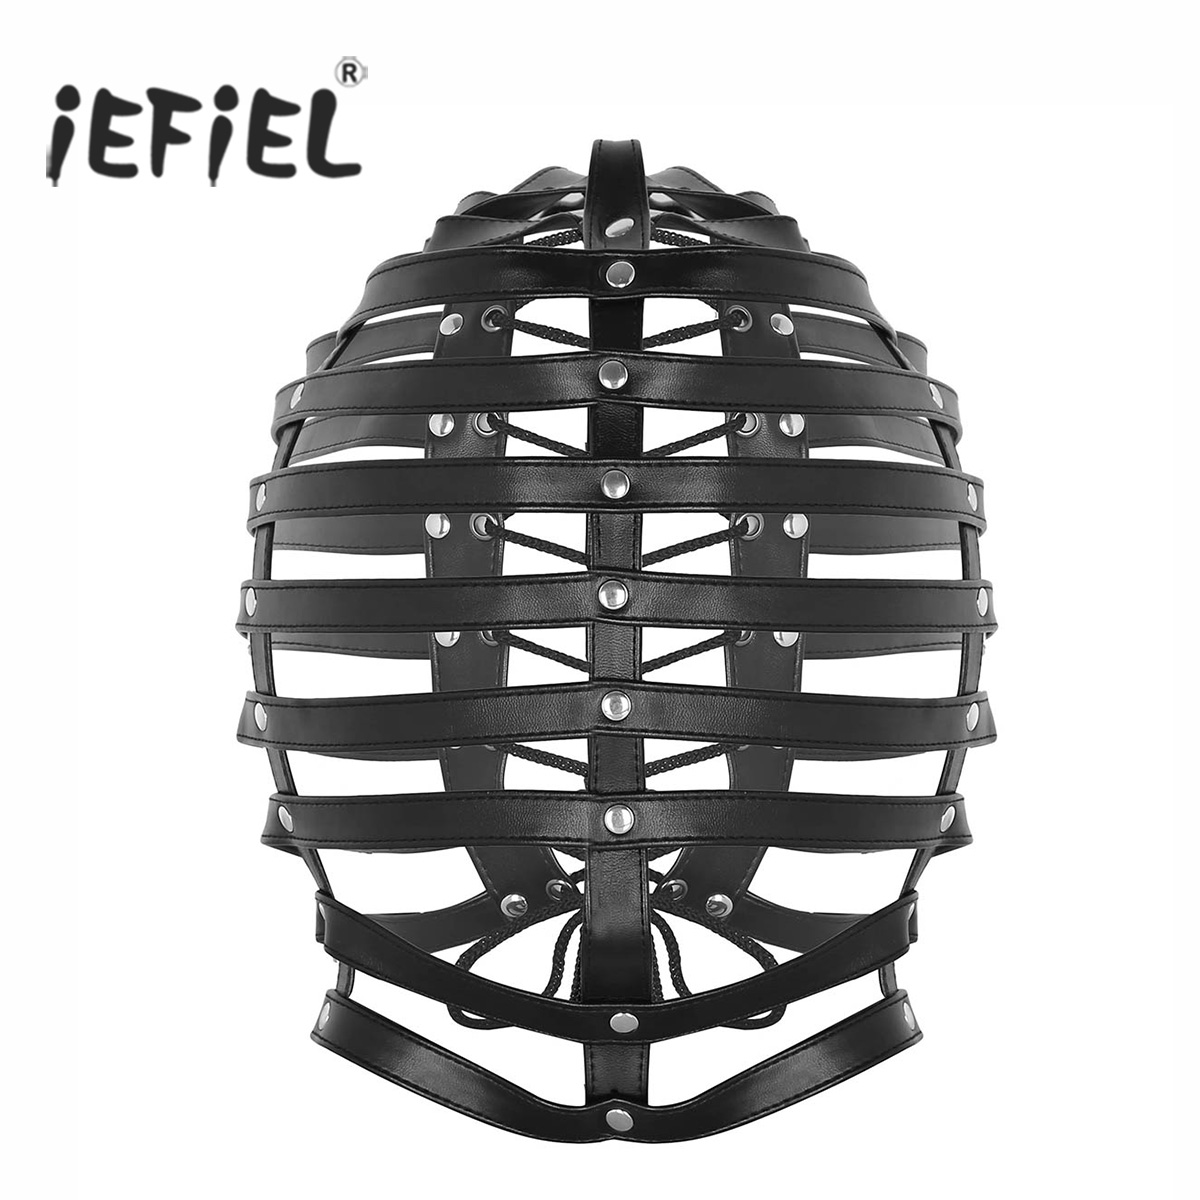 Unisex Black Mens Adjustable Faux Leather Fancy Dress Masks Full Covered Hood Mask Buckled Lockable Caged Head Harness Costumes